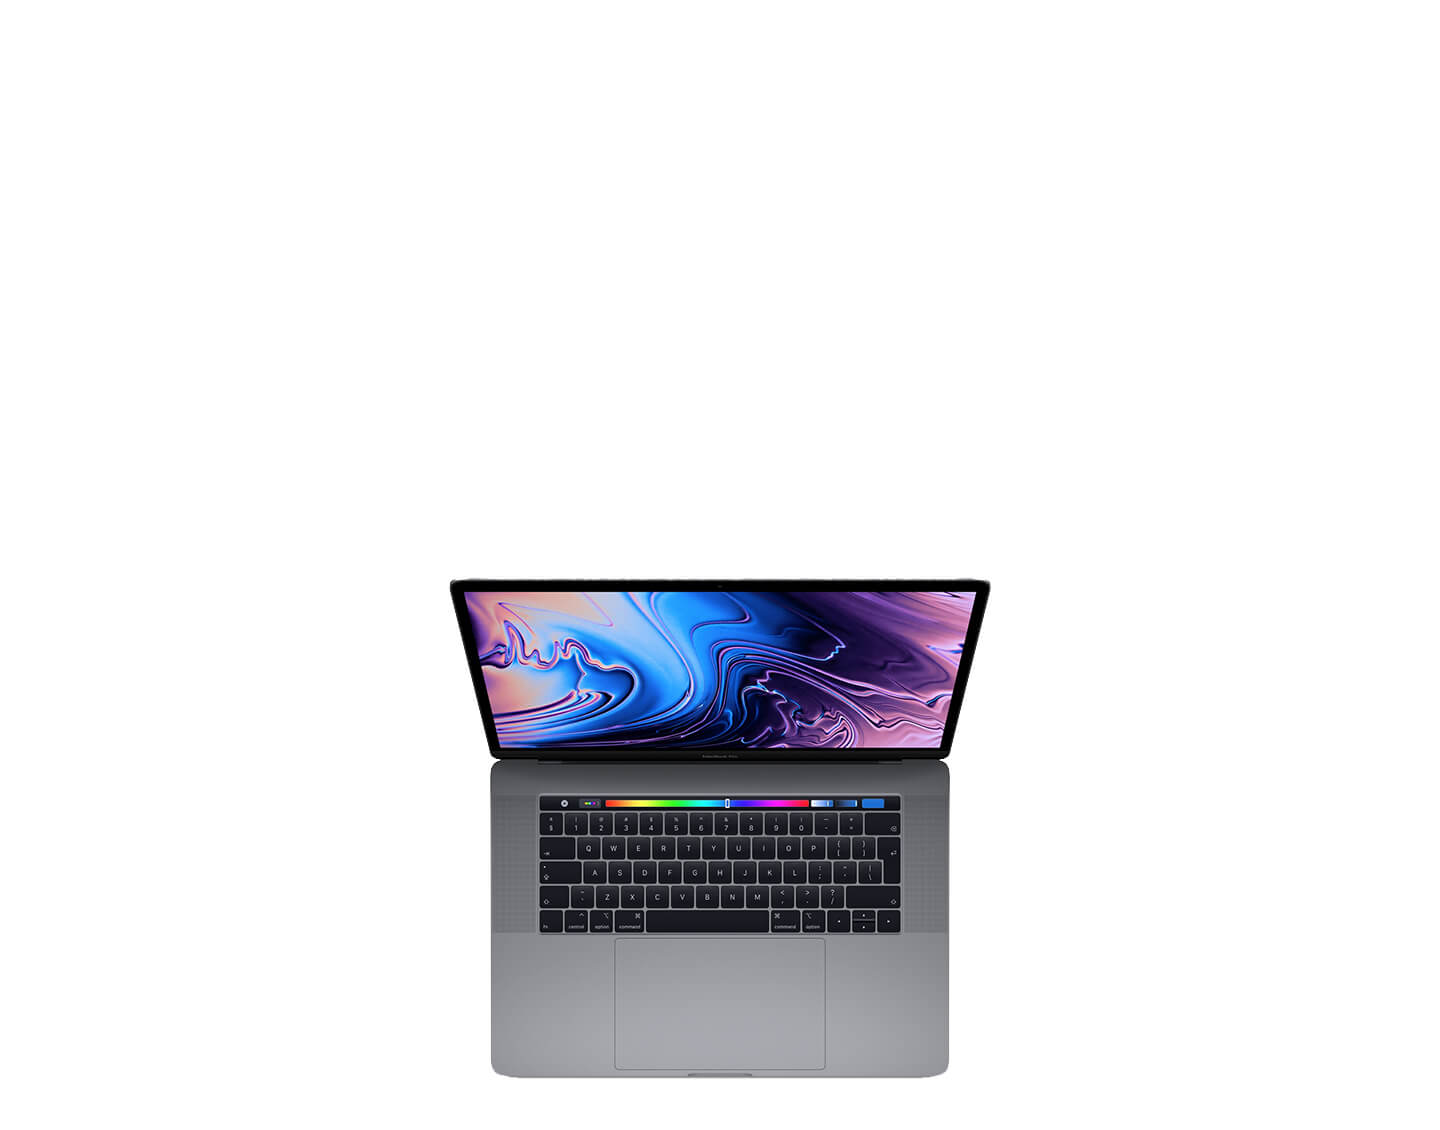 macbookPsoon